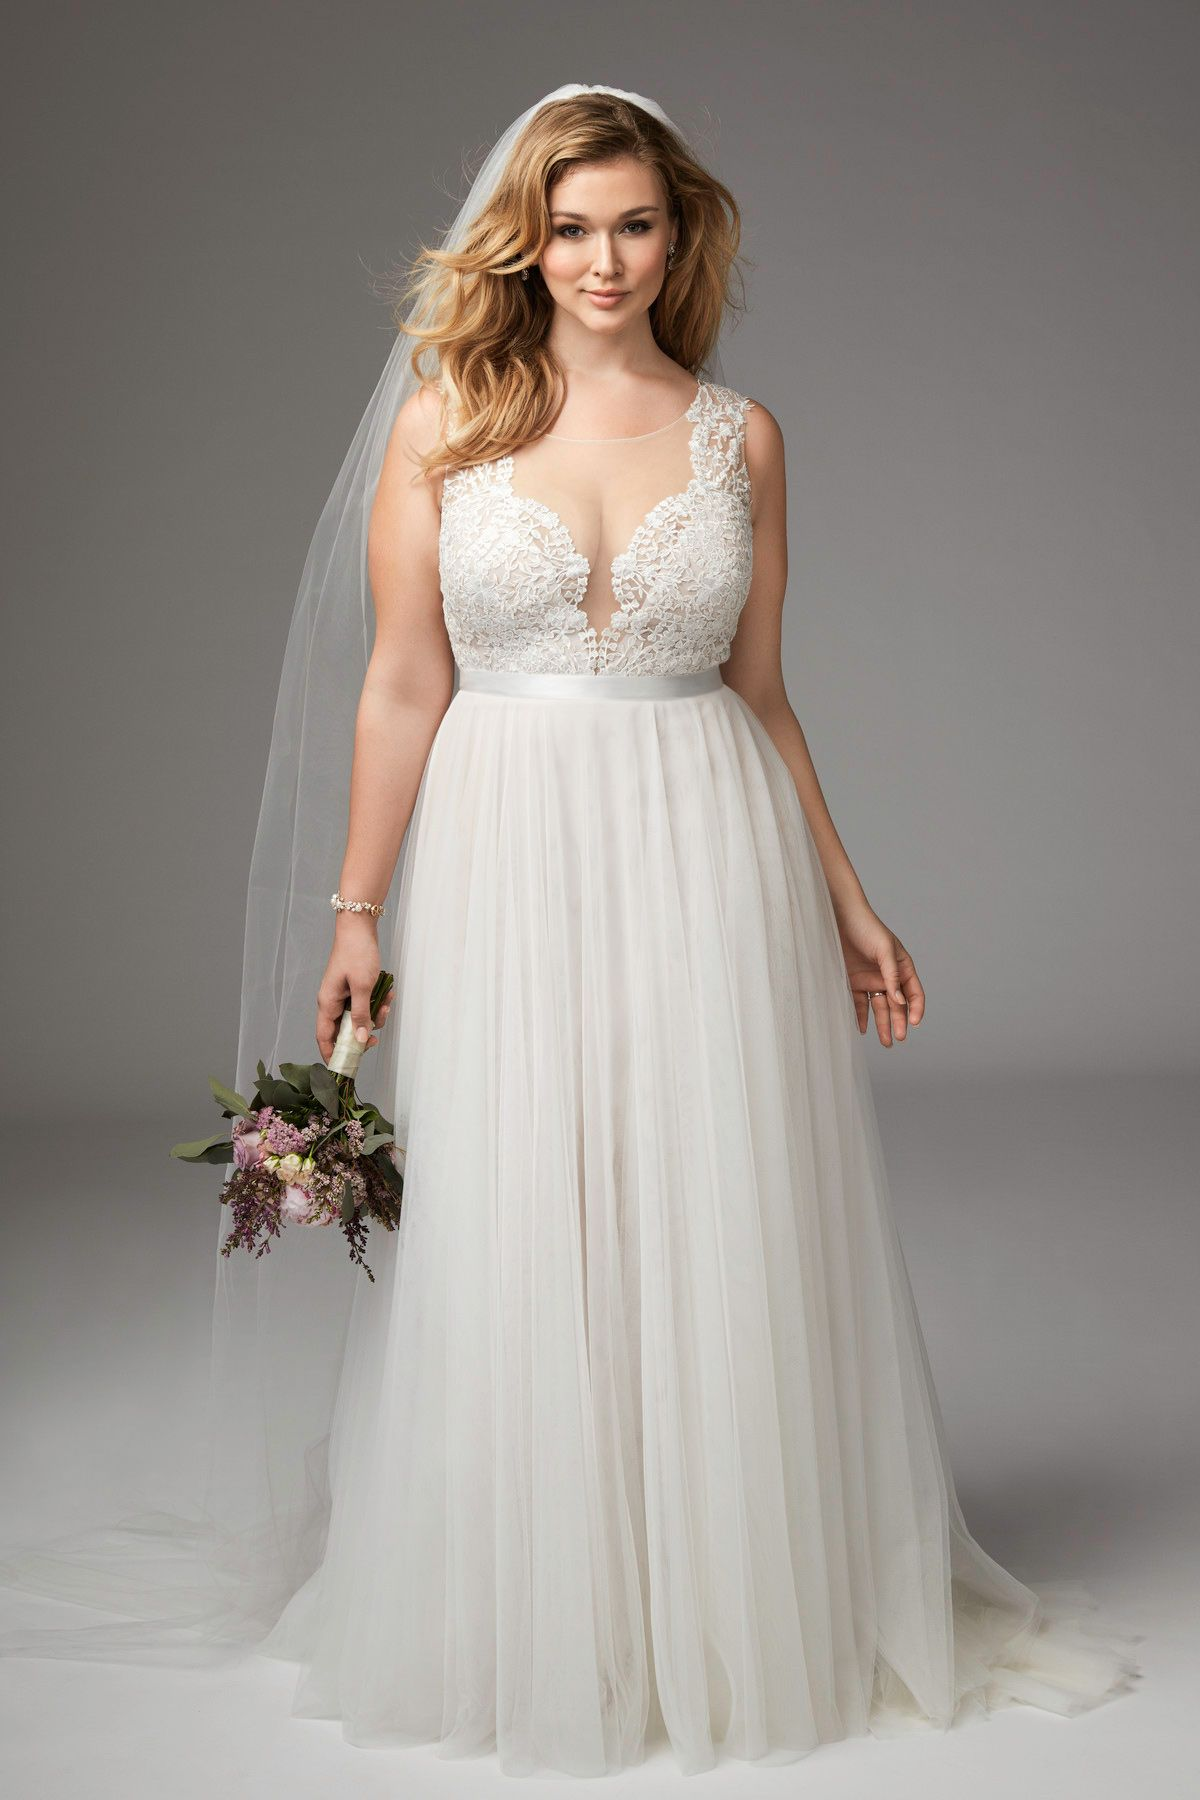 Marnie 14715 Brides Wtoo by Watters Wedding dresses